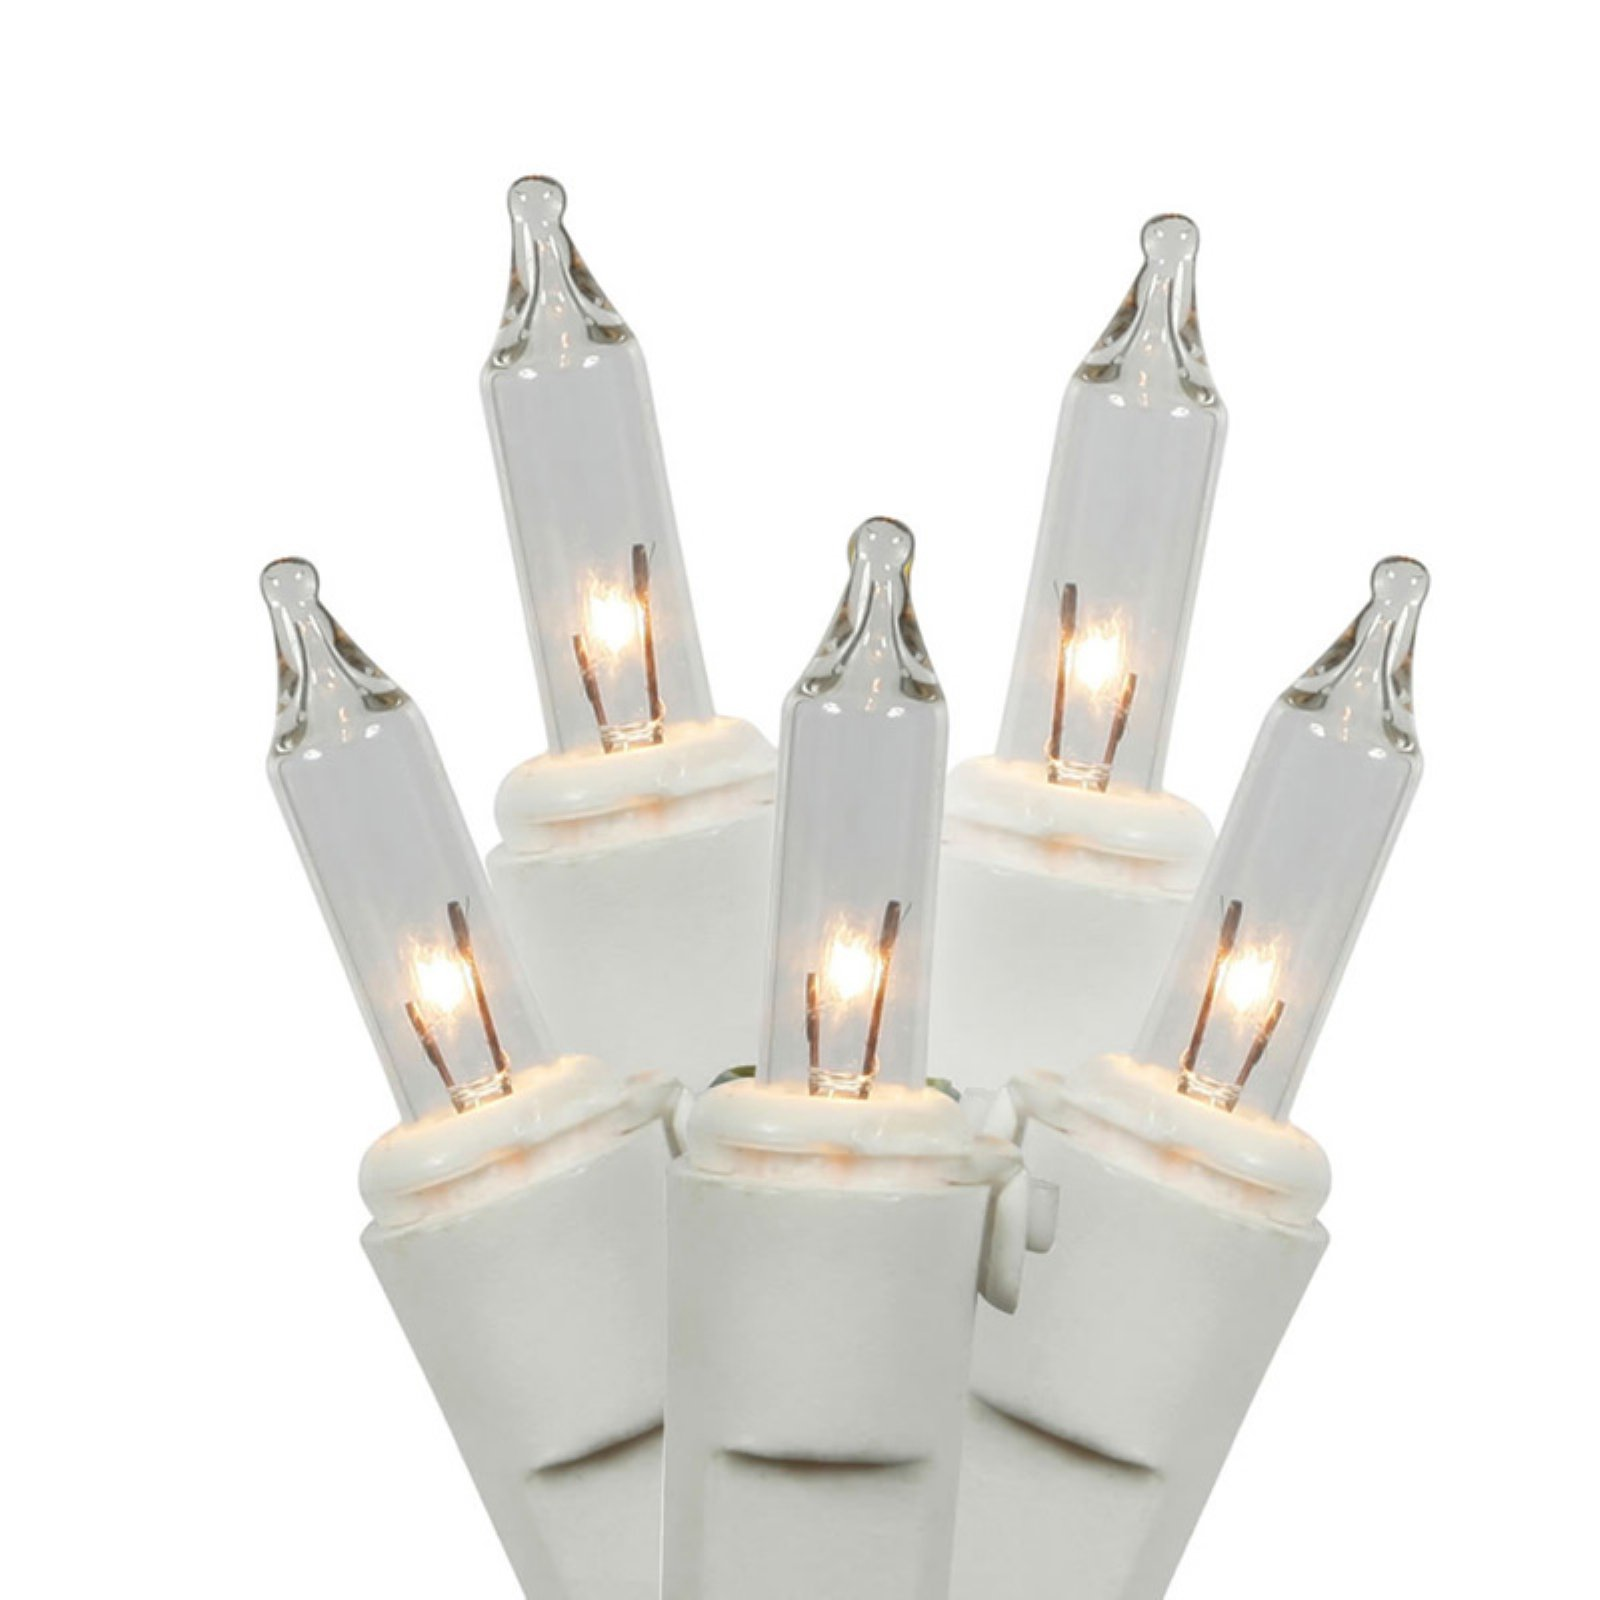 Vickerman Clear Mini String Lights, 100 Count